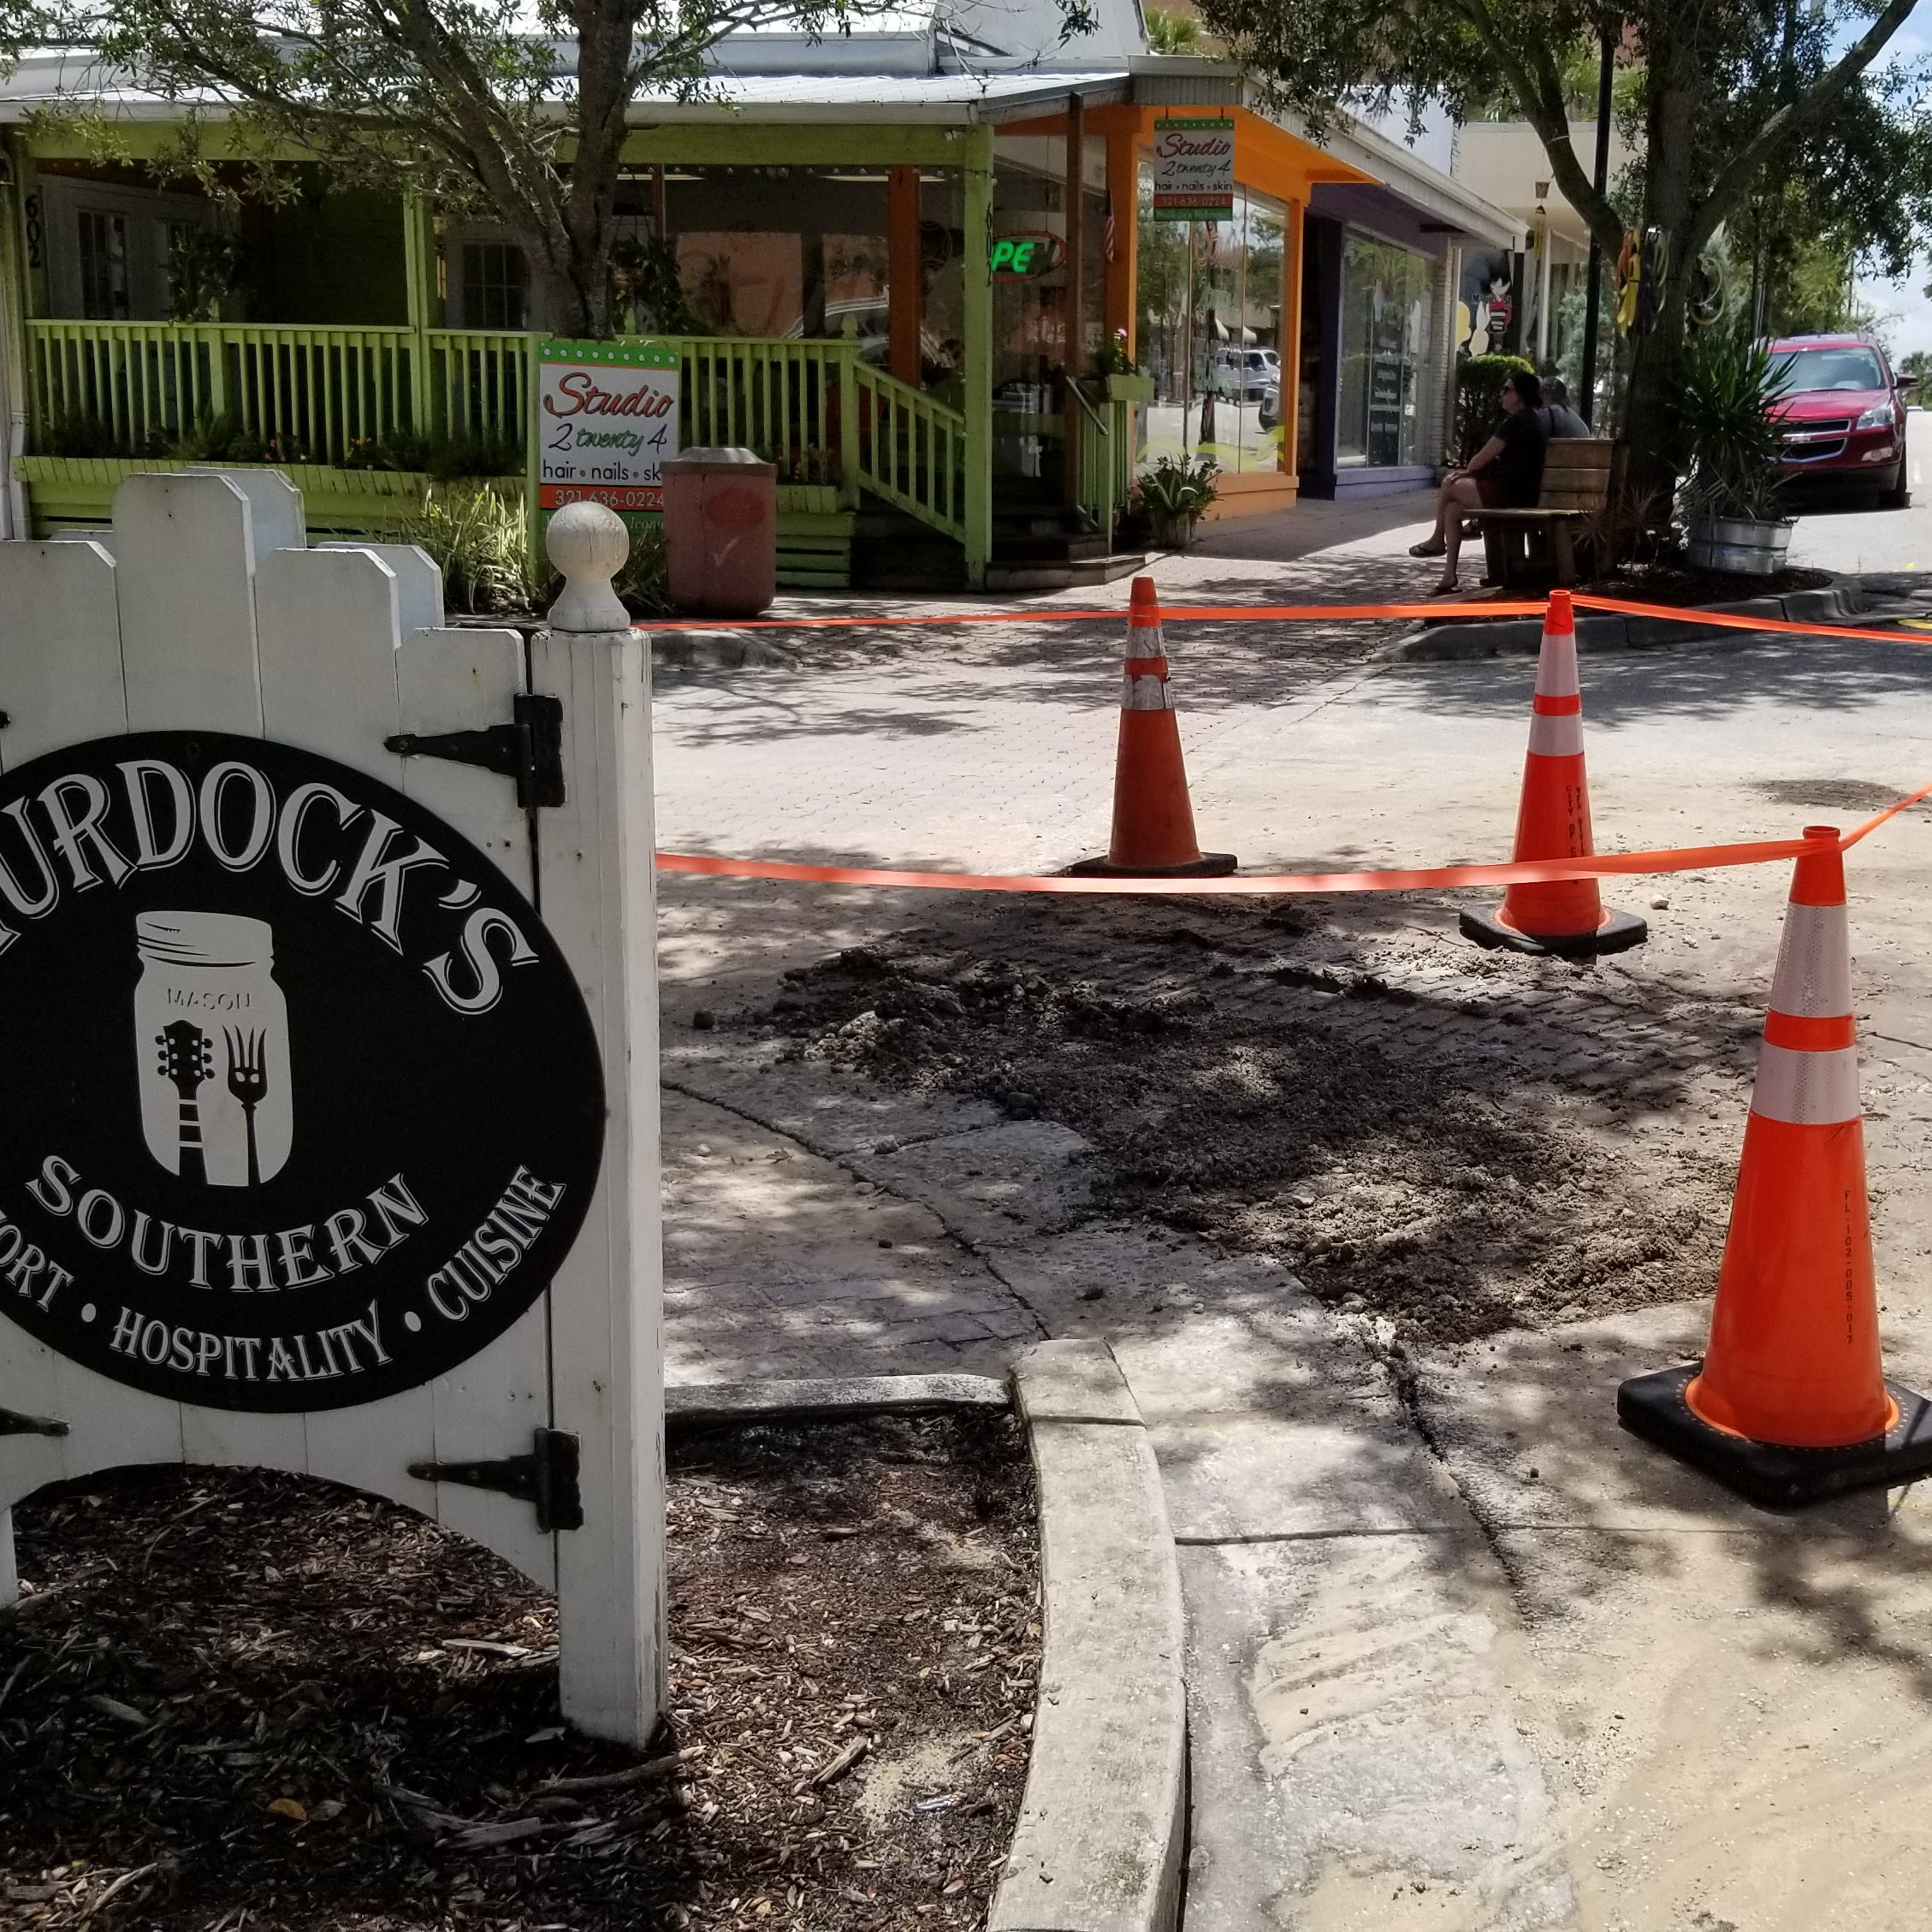 Main break in front of Cocoa Village restaurant was water, not sewage, officials said